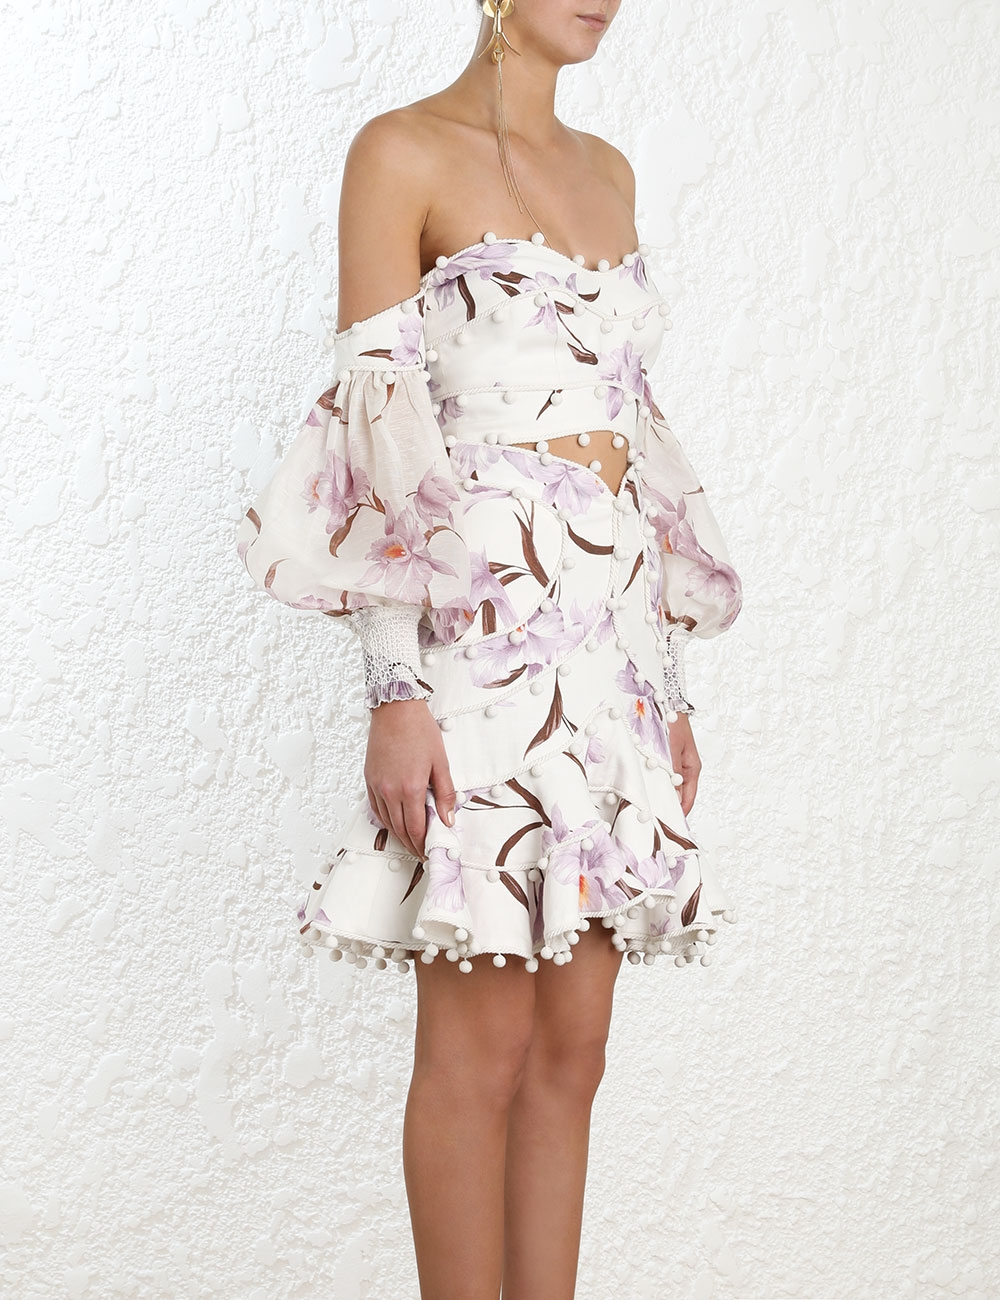 Corsage Bauble Skirt